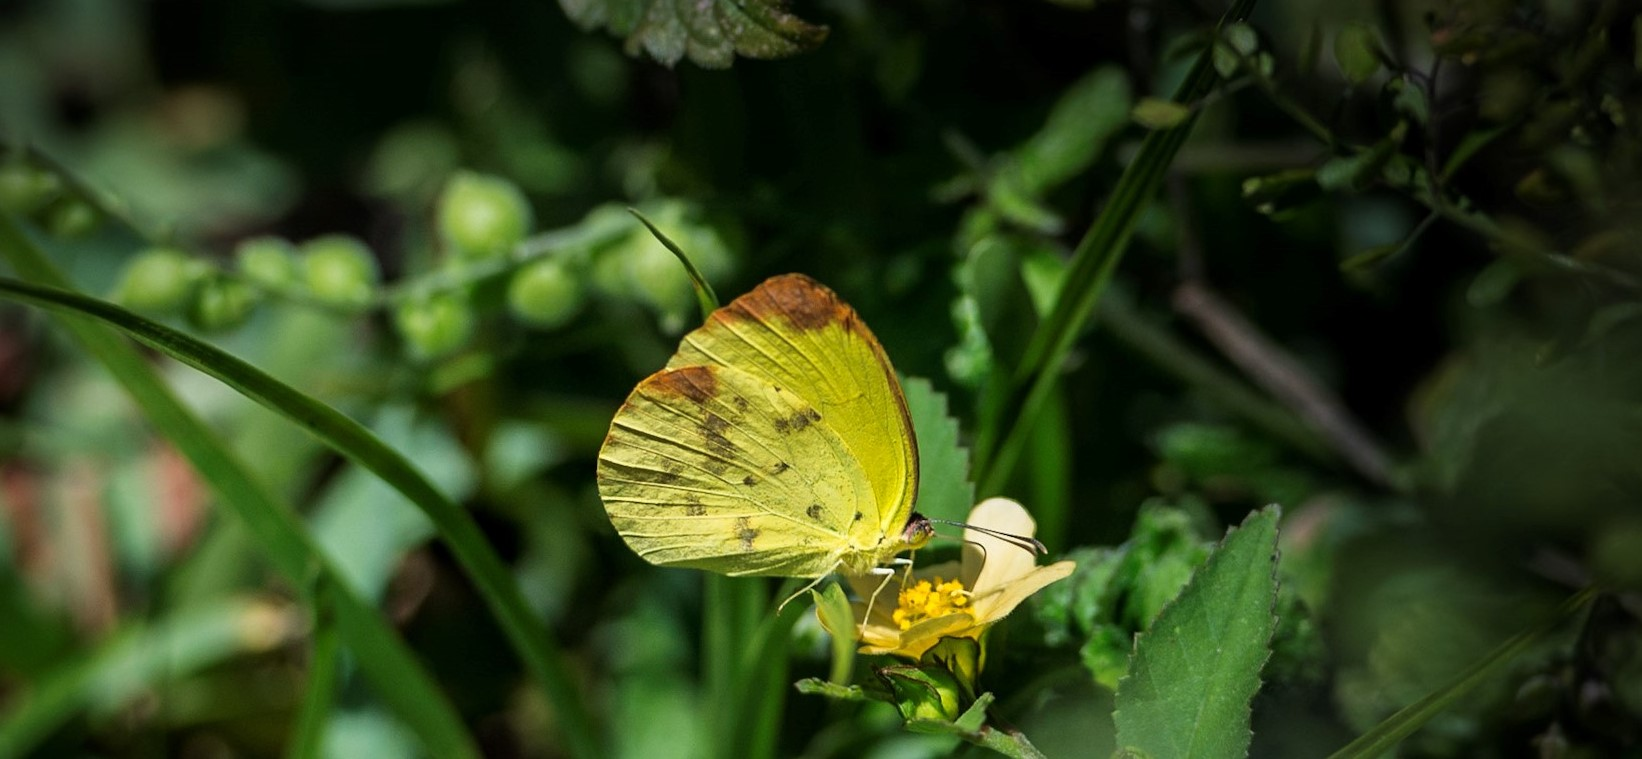 leeringi estate butterfly dina yellow by Elias Horna